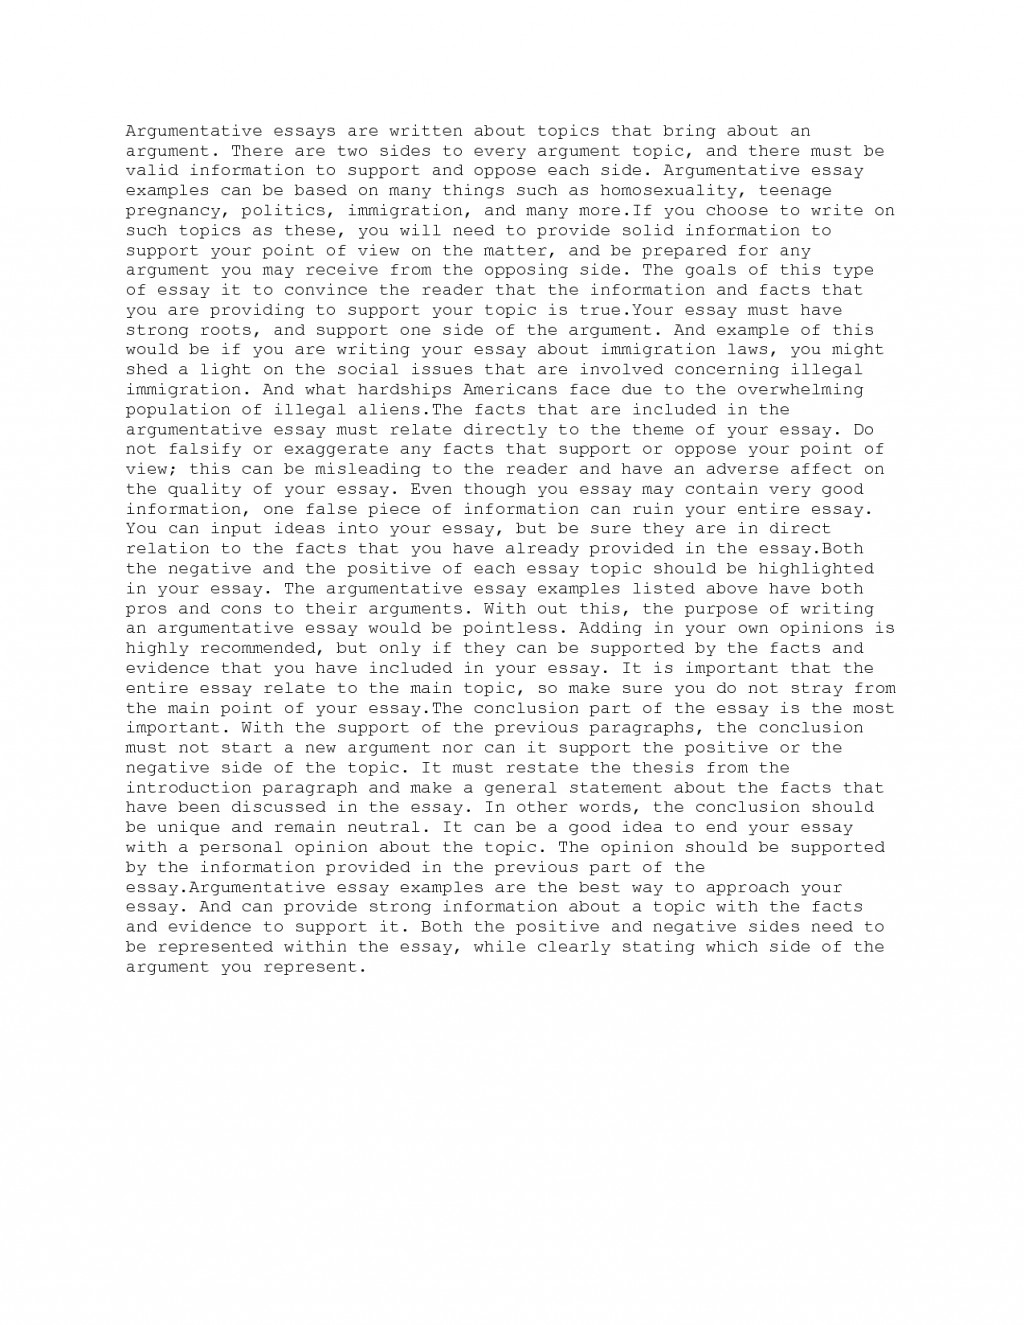 017 Qv3jjq5wkt Essay Example How To Write Good Hook For Staggering A An Argumentative College Large